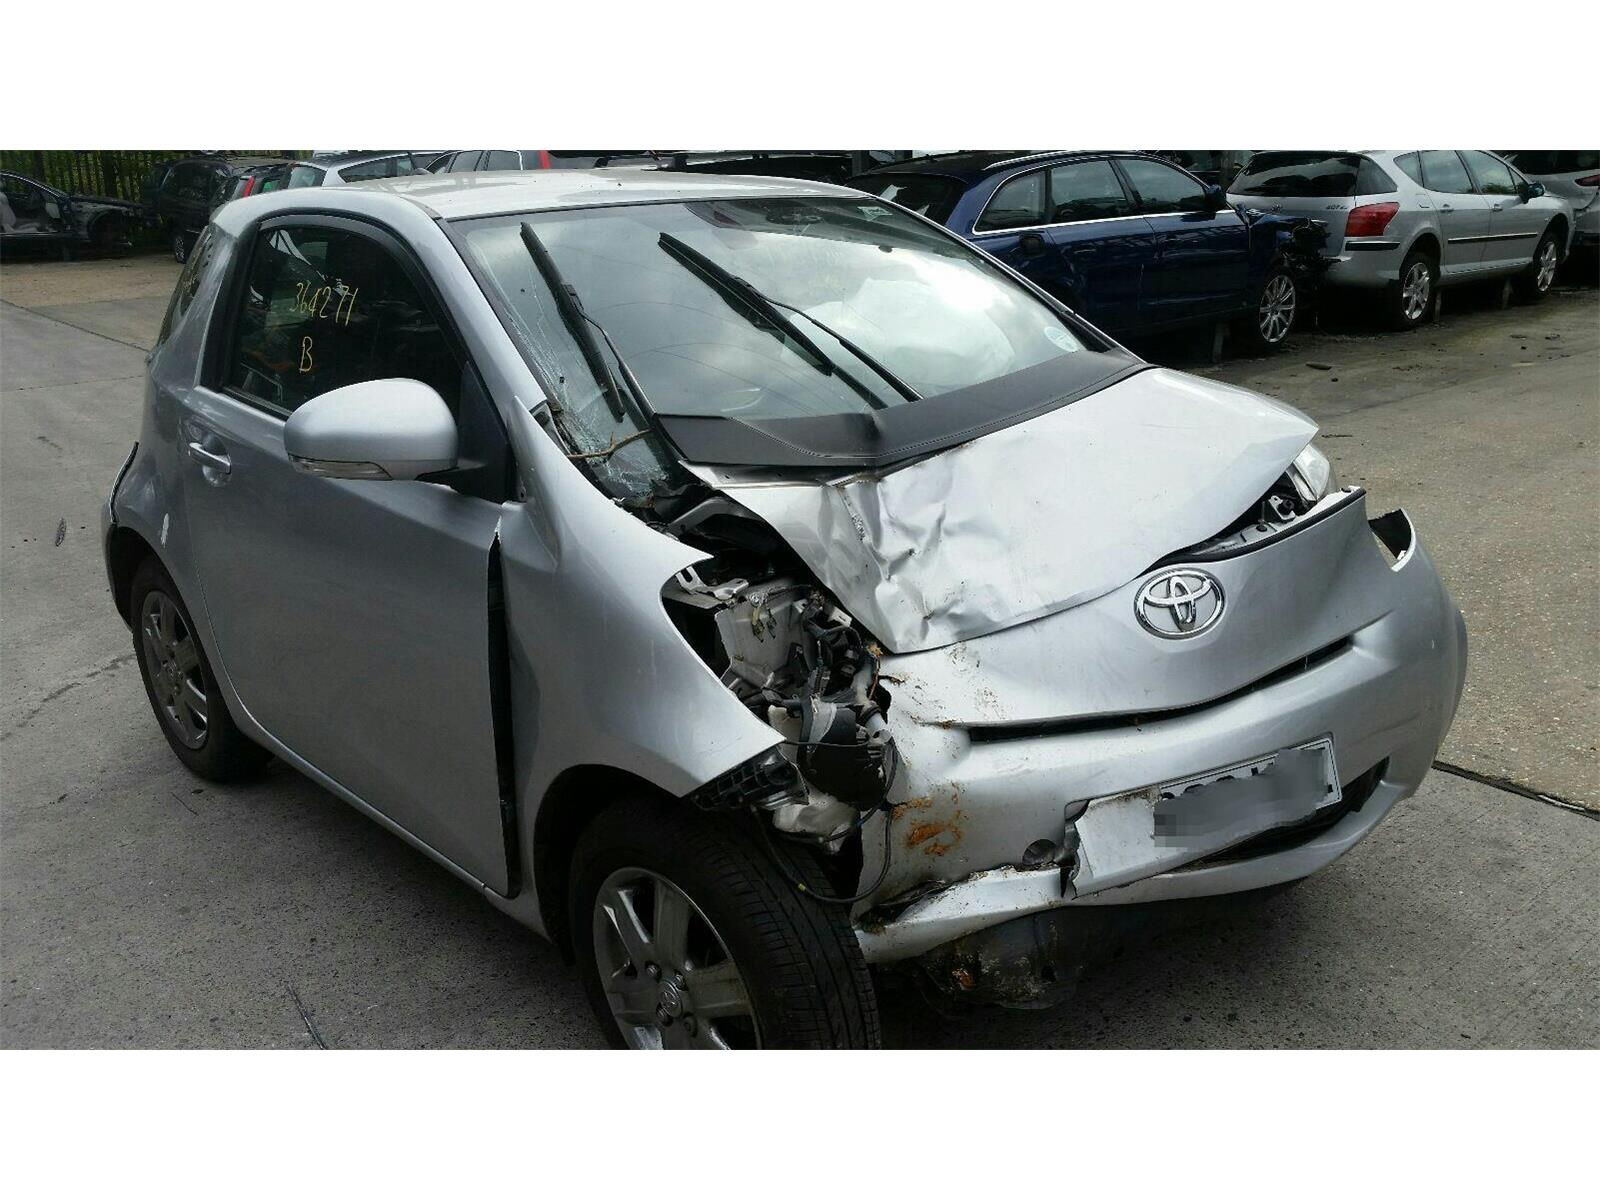 toyota iq 2009 on iq2 3 door hatchback scrap salvage car for sale auction silverlake. Black Bedroom Furniture Sets. Home Design Ideas